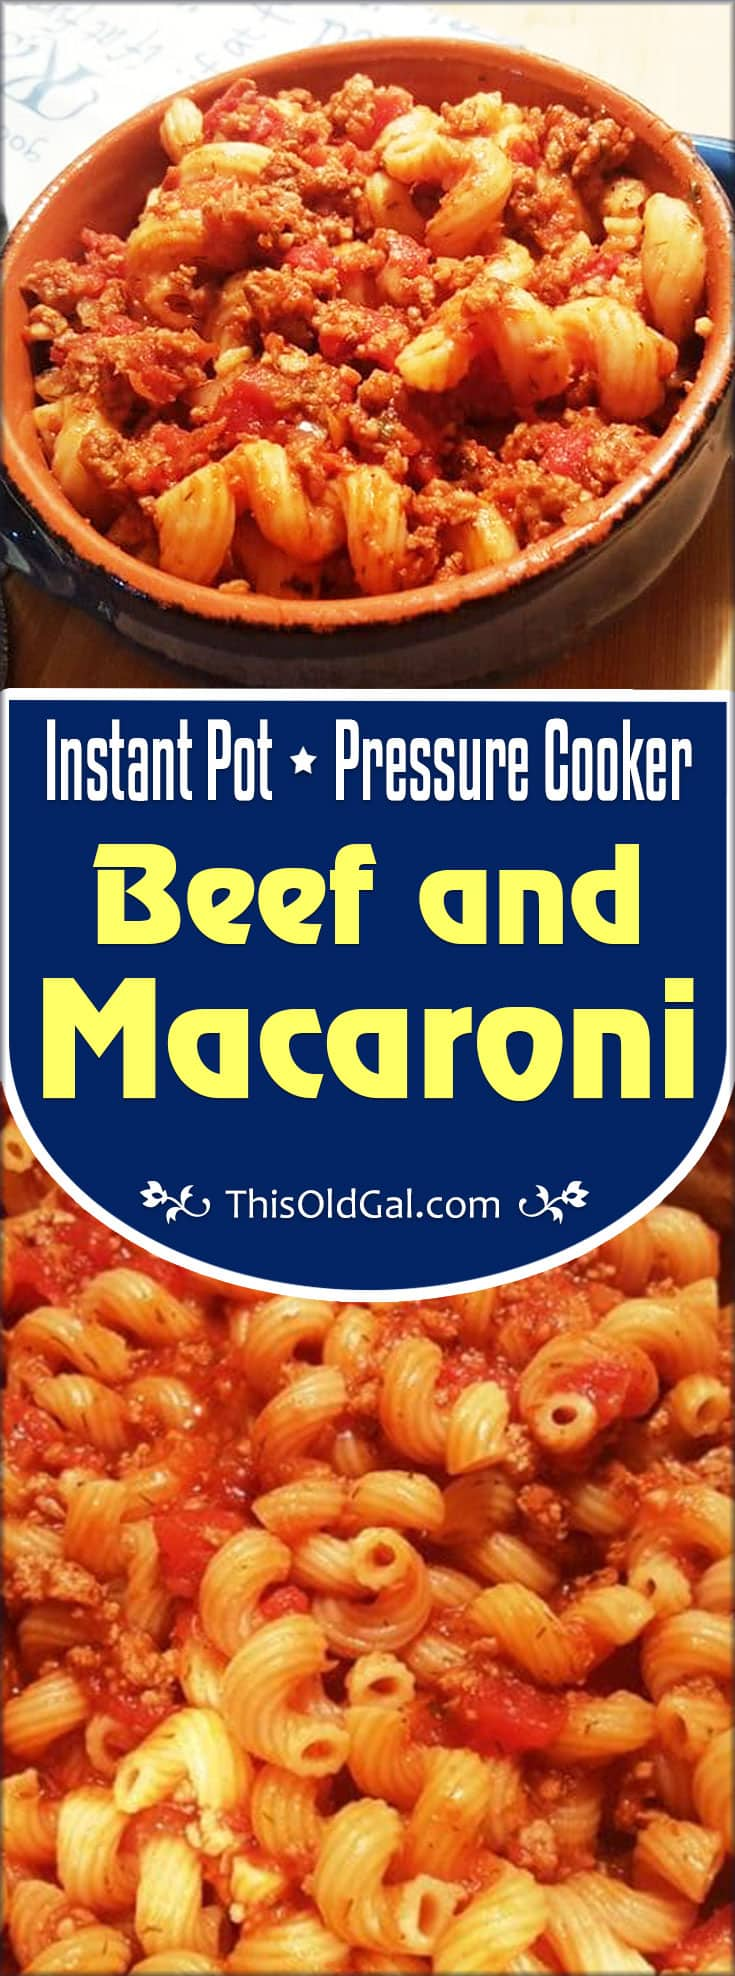 Pressure Cooker Beef and Macaroni {Instant Pot Bolognese/Johnny Marzetti}